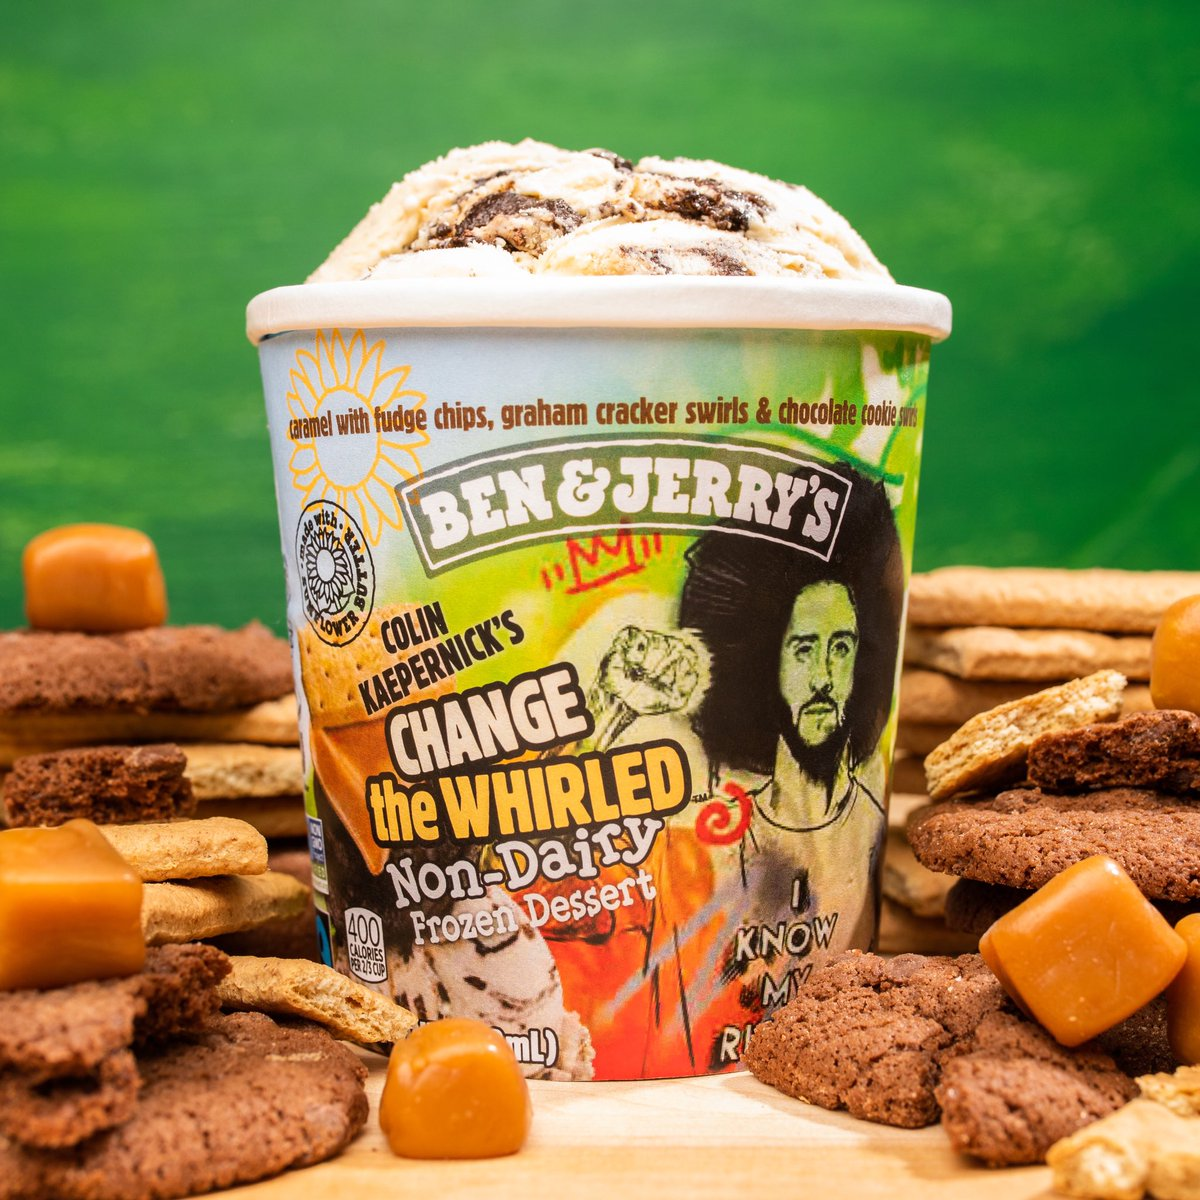 I've teamed up with @BenAndJerrys to serve up joy on the journey to justice!    Today, we're excited to introduce Change the Whirled, a new non-dairy flavor that hits shelves in early-2021!    100% of my proceeds will go to @yourrightscamp with matching support from Ben & Jerry's https://t.co/OouYwUXPXK